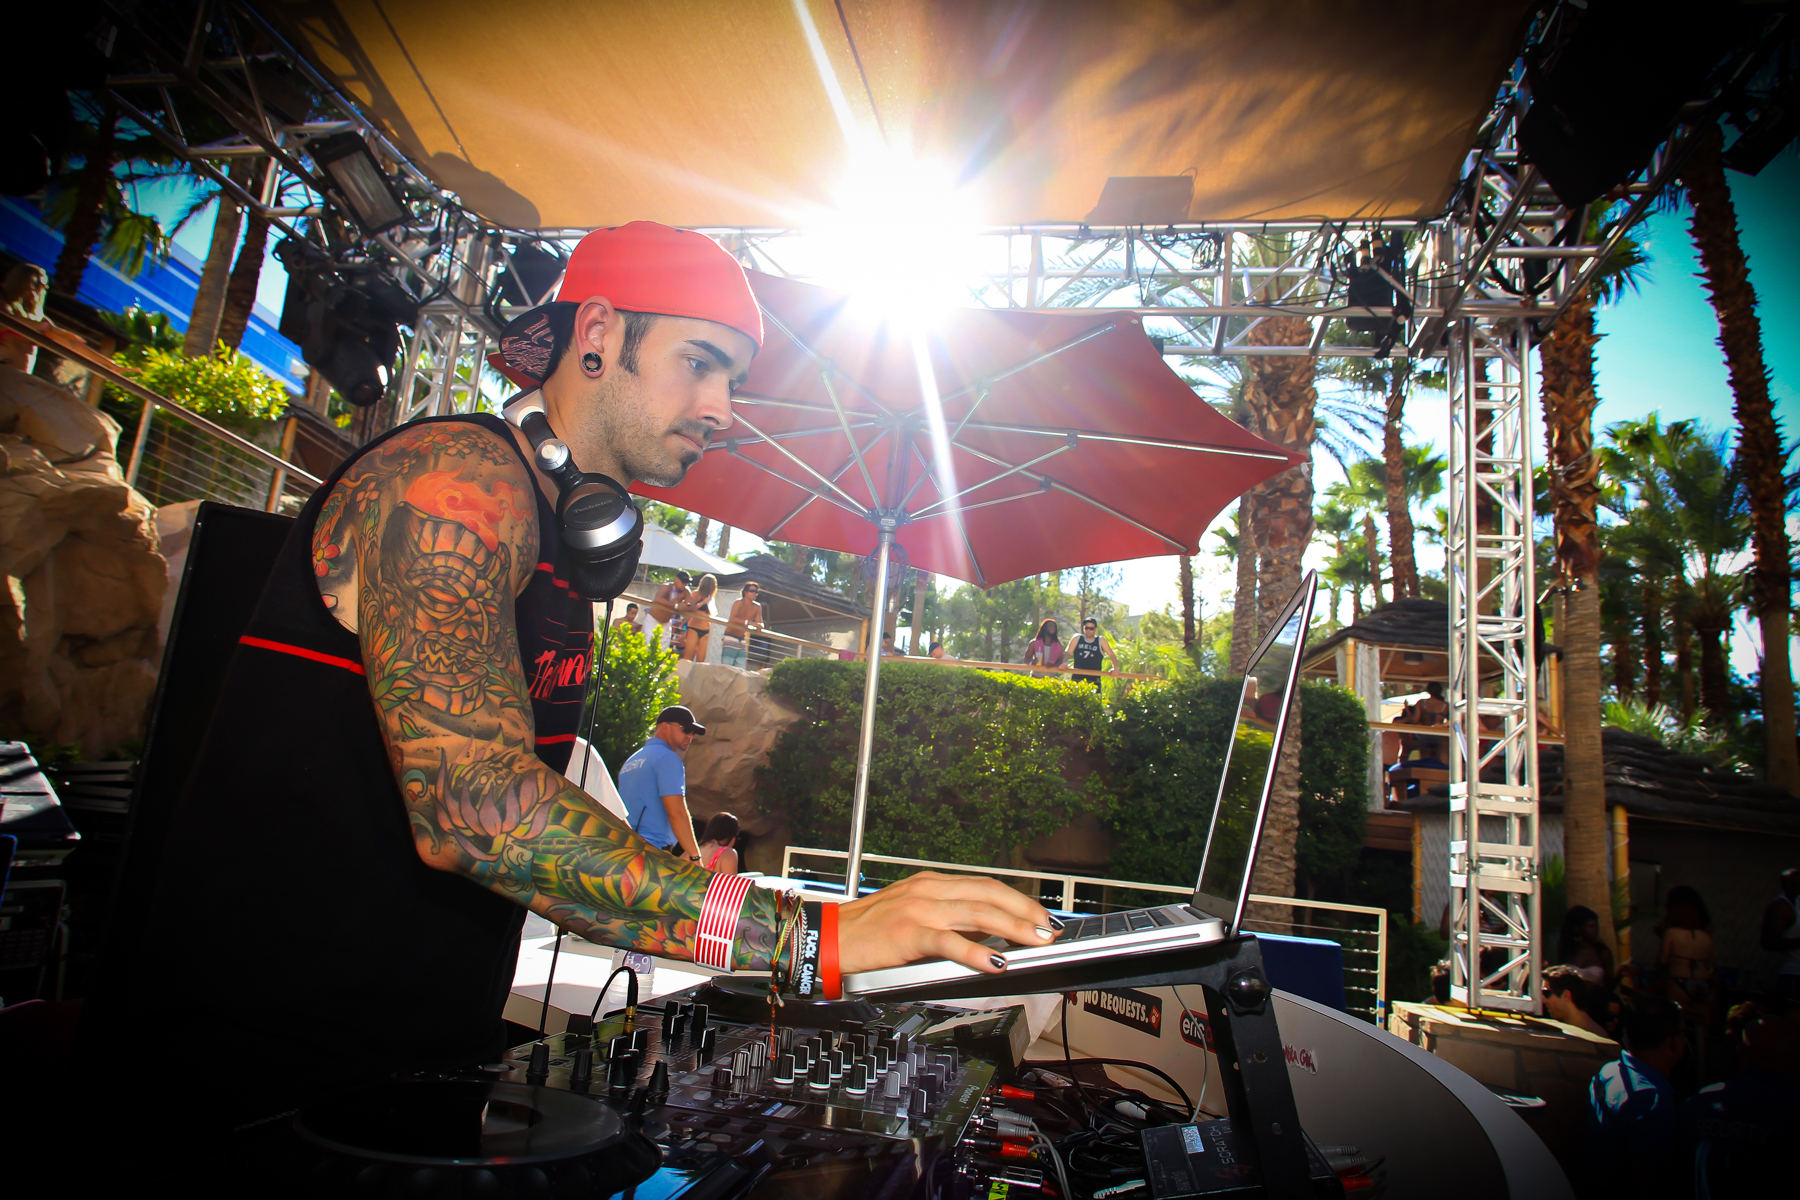 Dj Shift at Hard Rock Beach Club